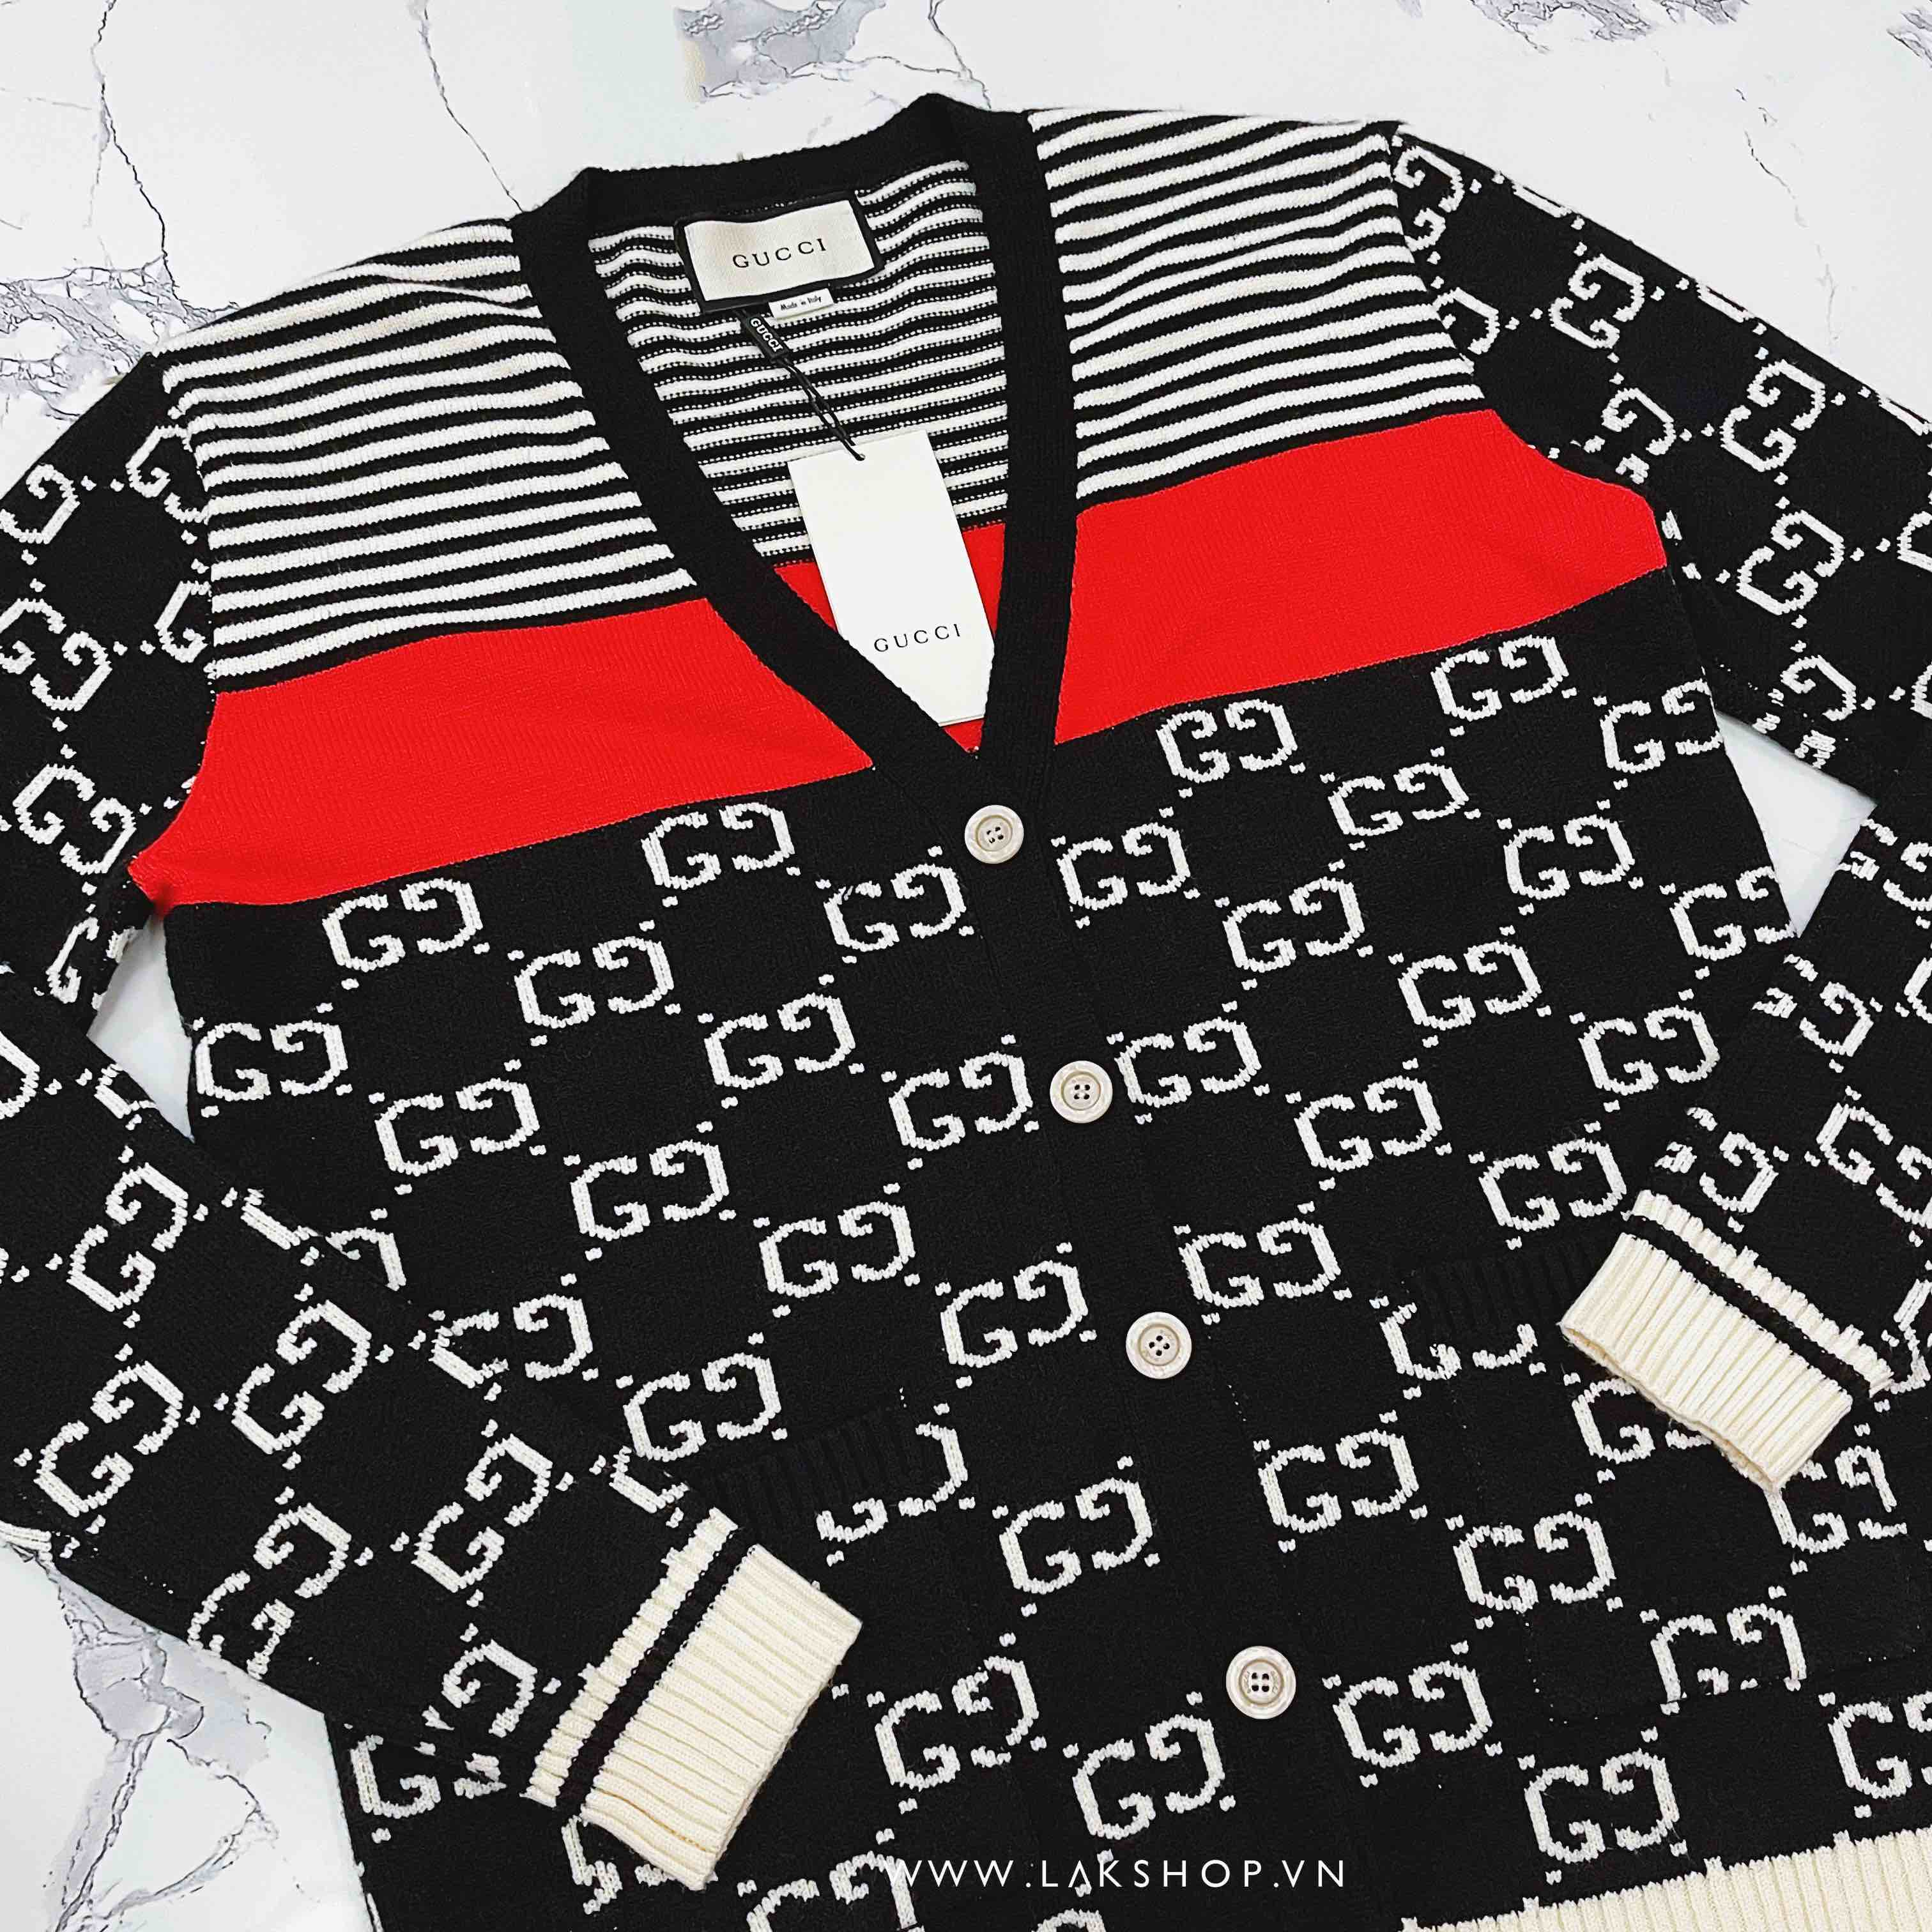 Gucci GG and Stripped Knit Cardigan